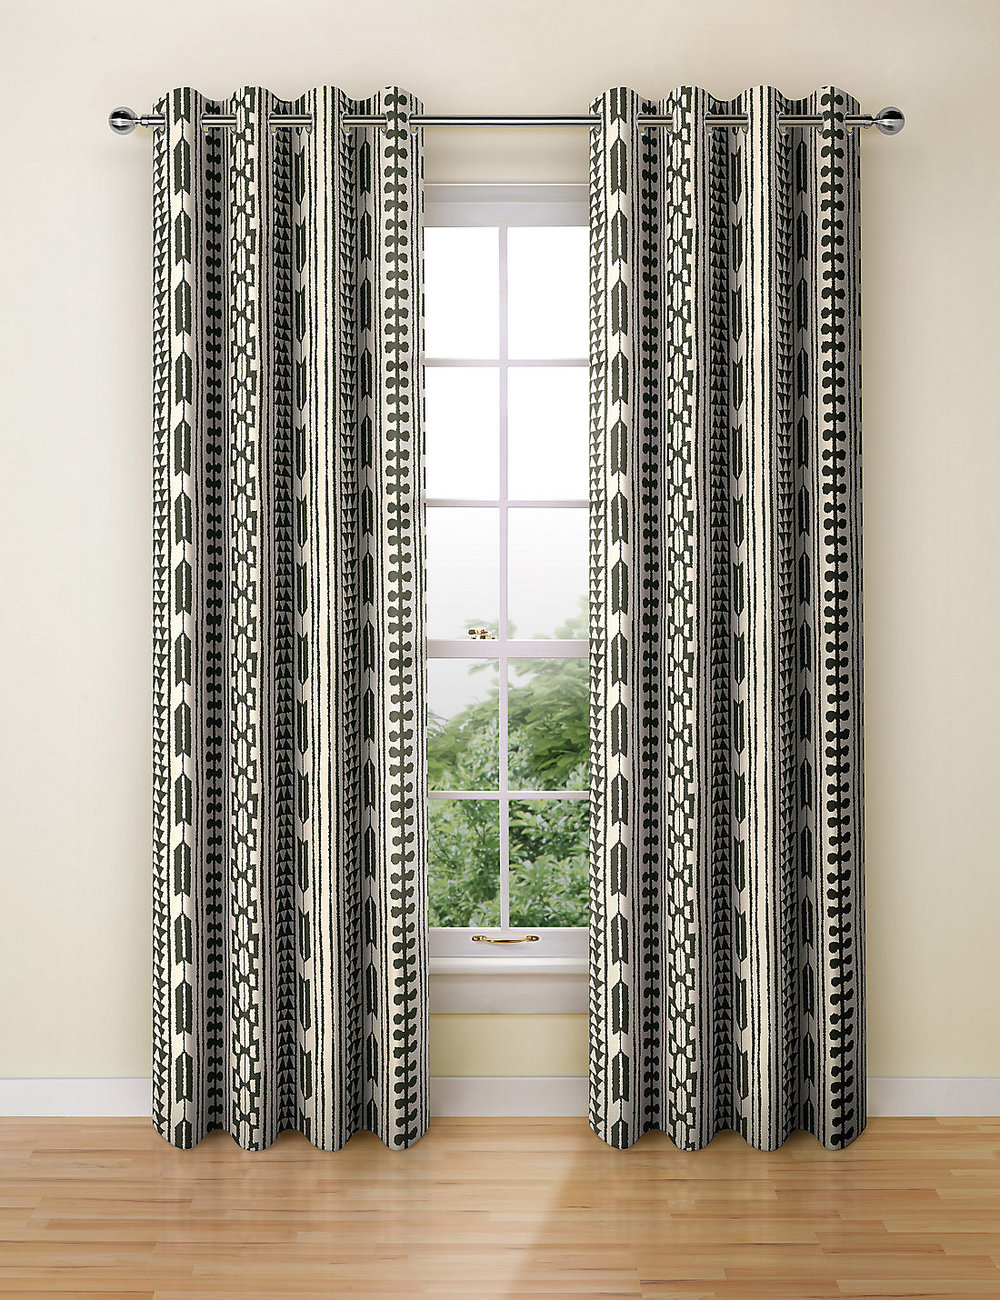 Tribal print curtain - Marks and Spencer - varying sizes and prices